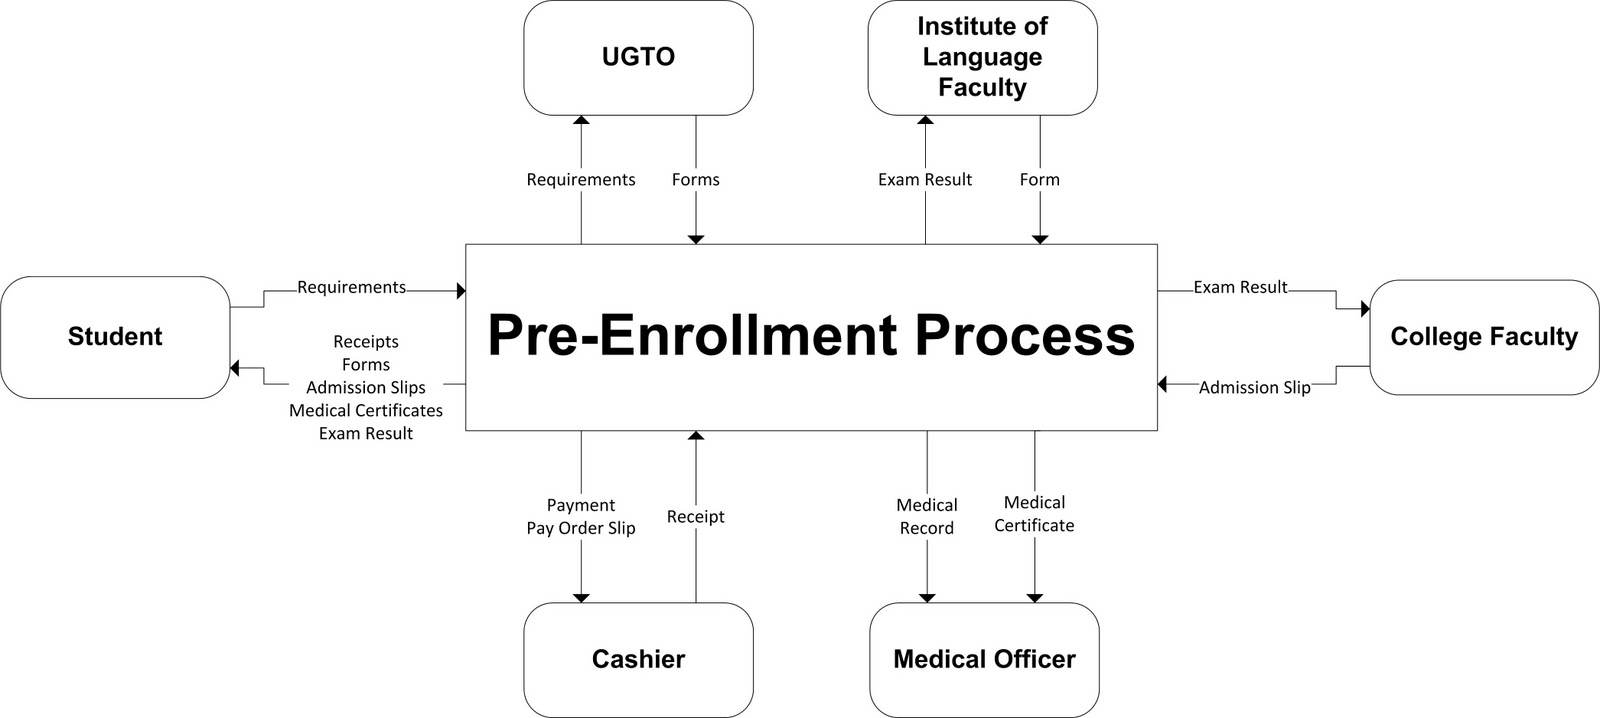 Blog ni mikelito usep pre enrollment data flow diagram usep pre enrollment data flow diagram ccuart Images